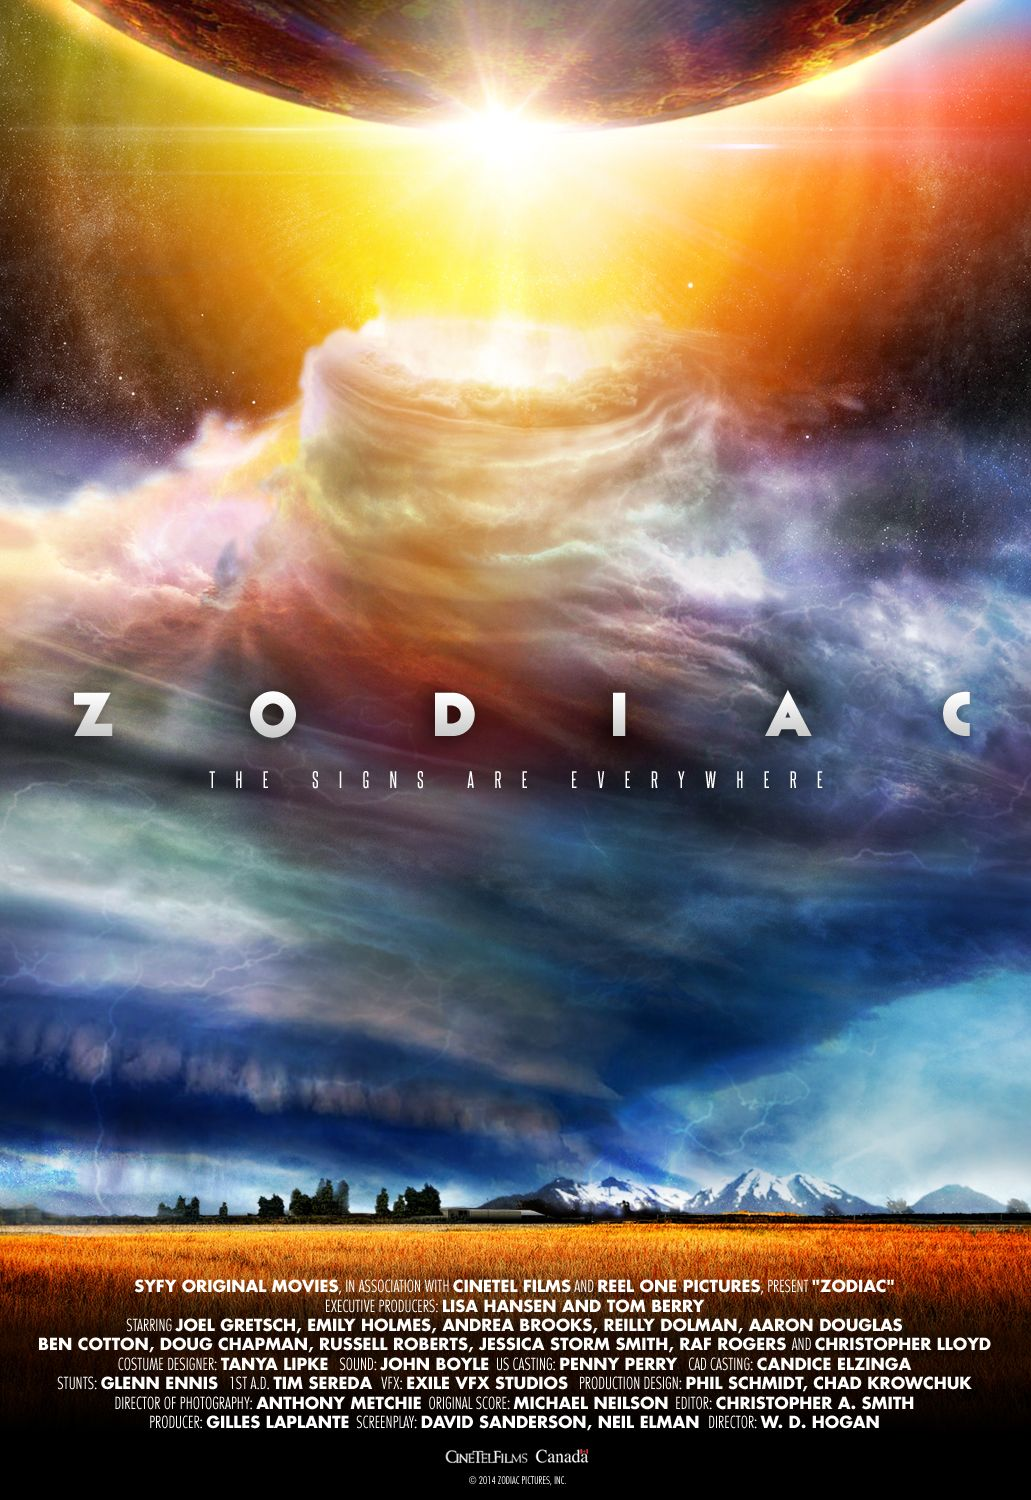 zodiac signs of the apocalypse movie poster and artwork